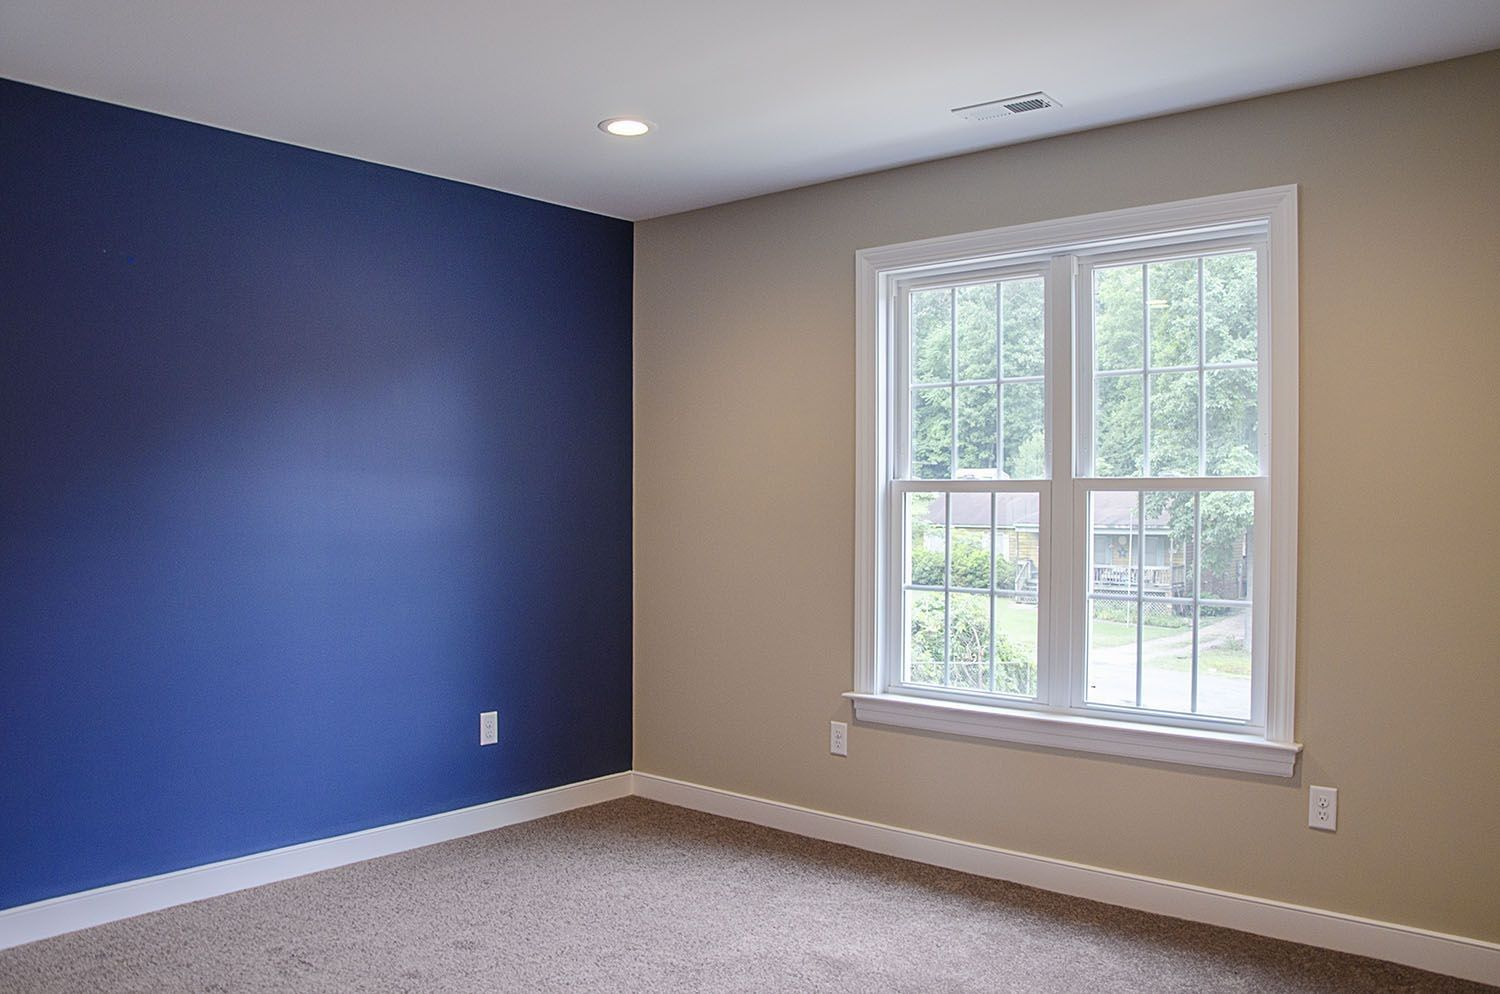 Royal Blue Accent Wall Bedroom Ideas In 2019 Pared Azul Azul